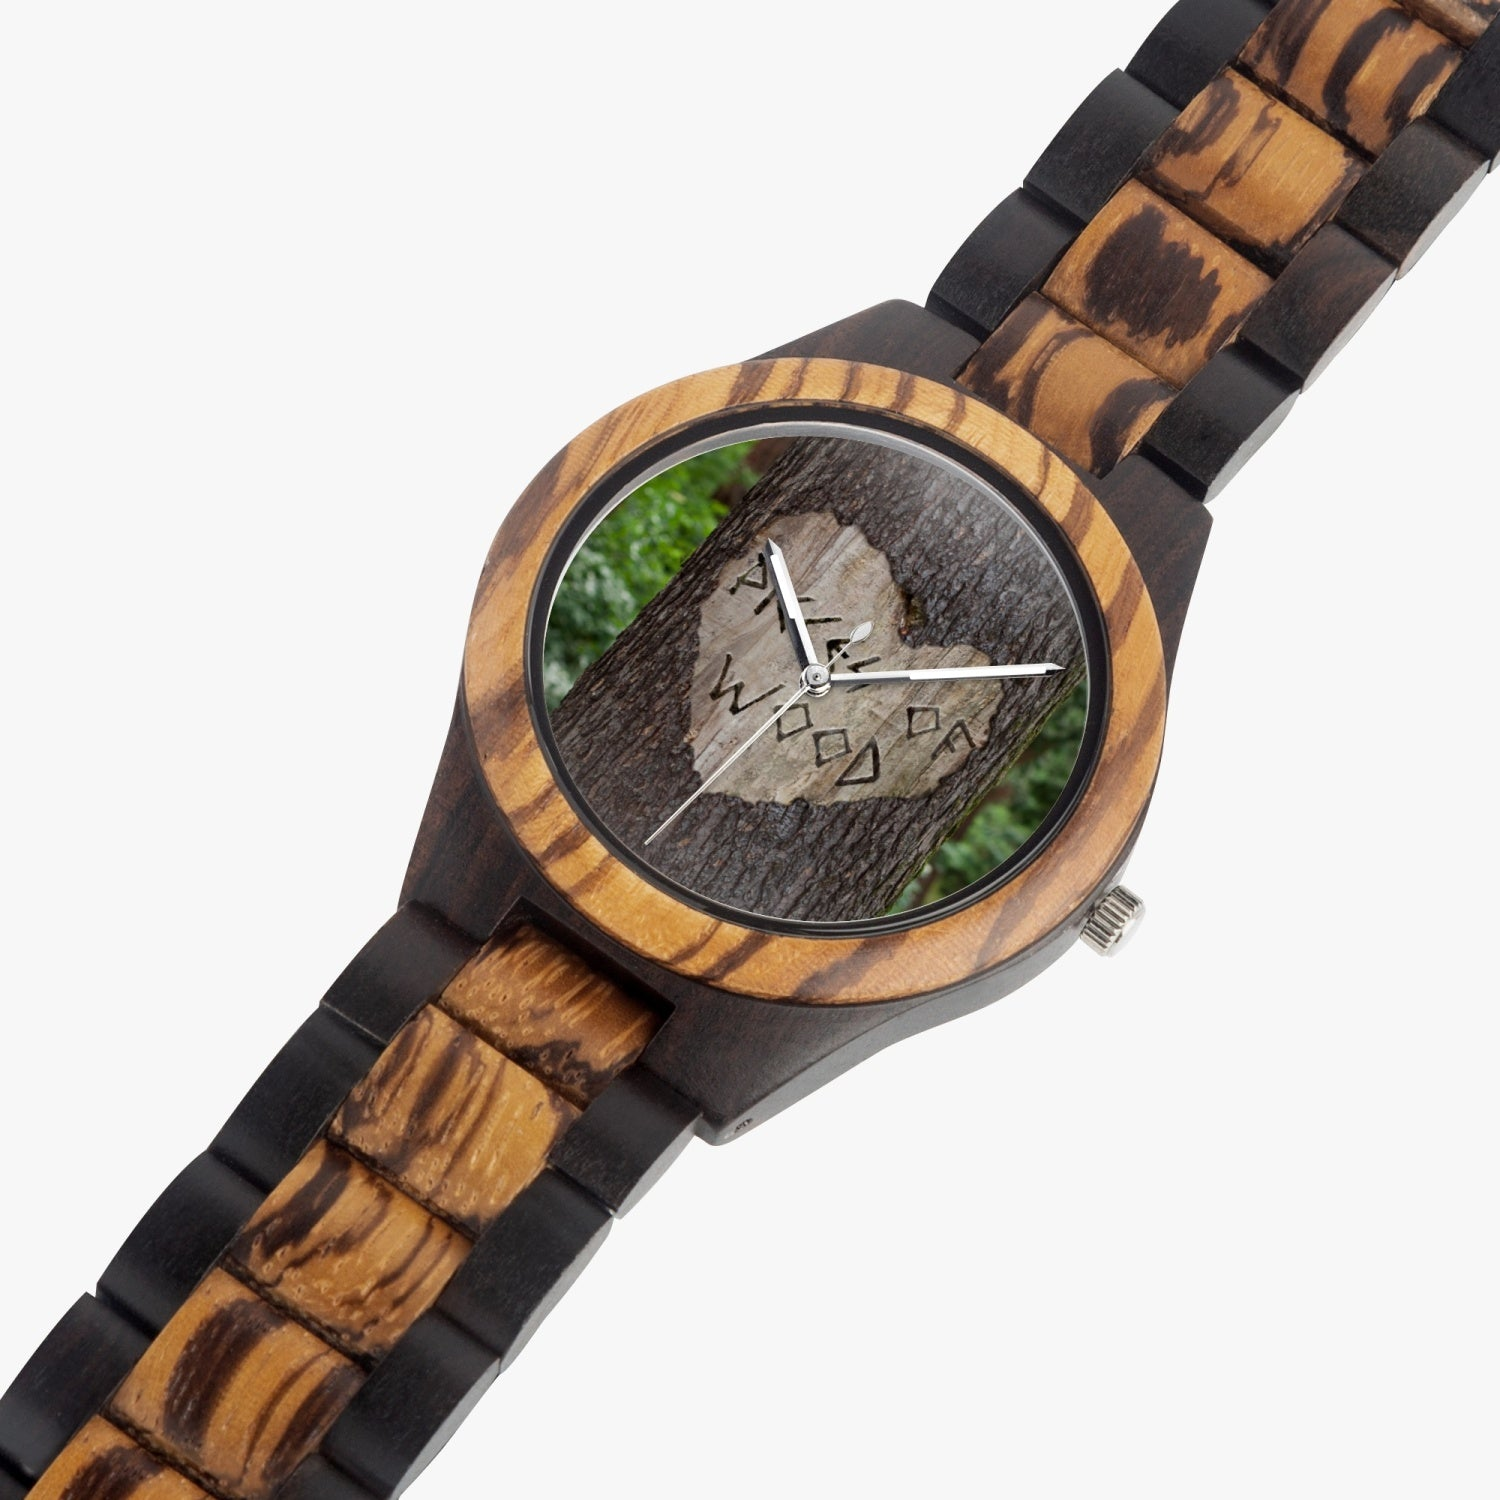 Pieces of Wood Branded Watch made from Italian Olive Lumber - for Men/Women